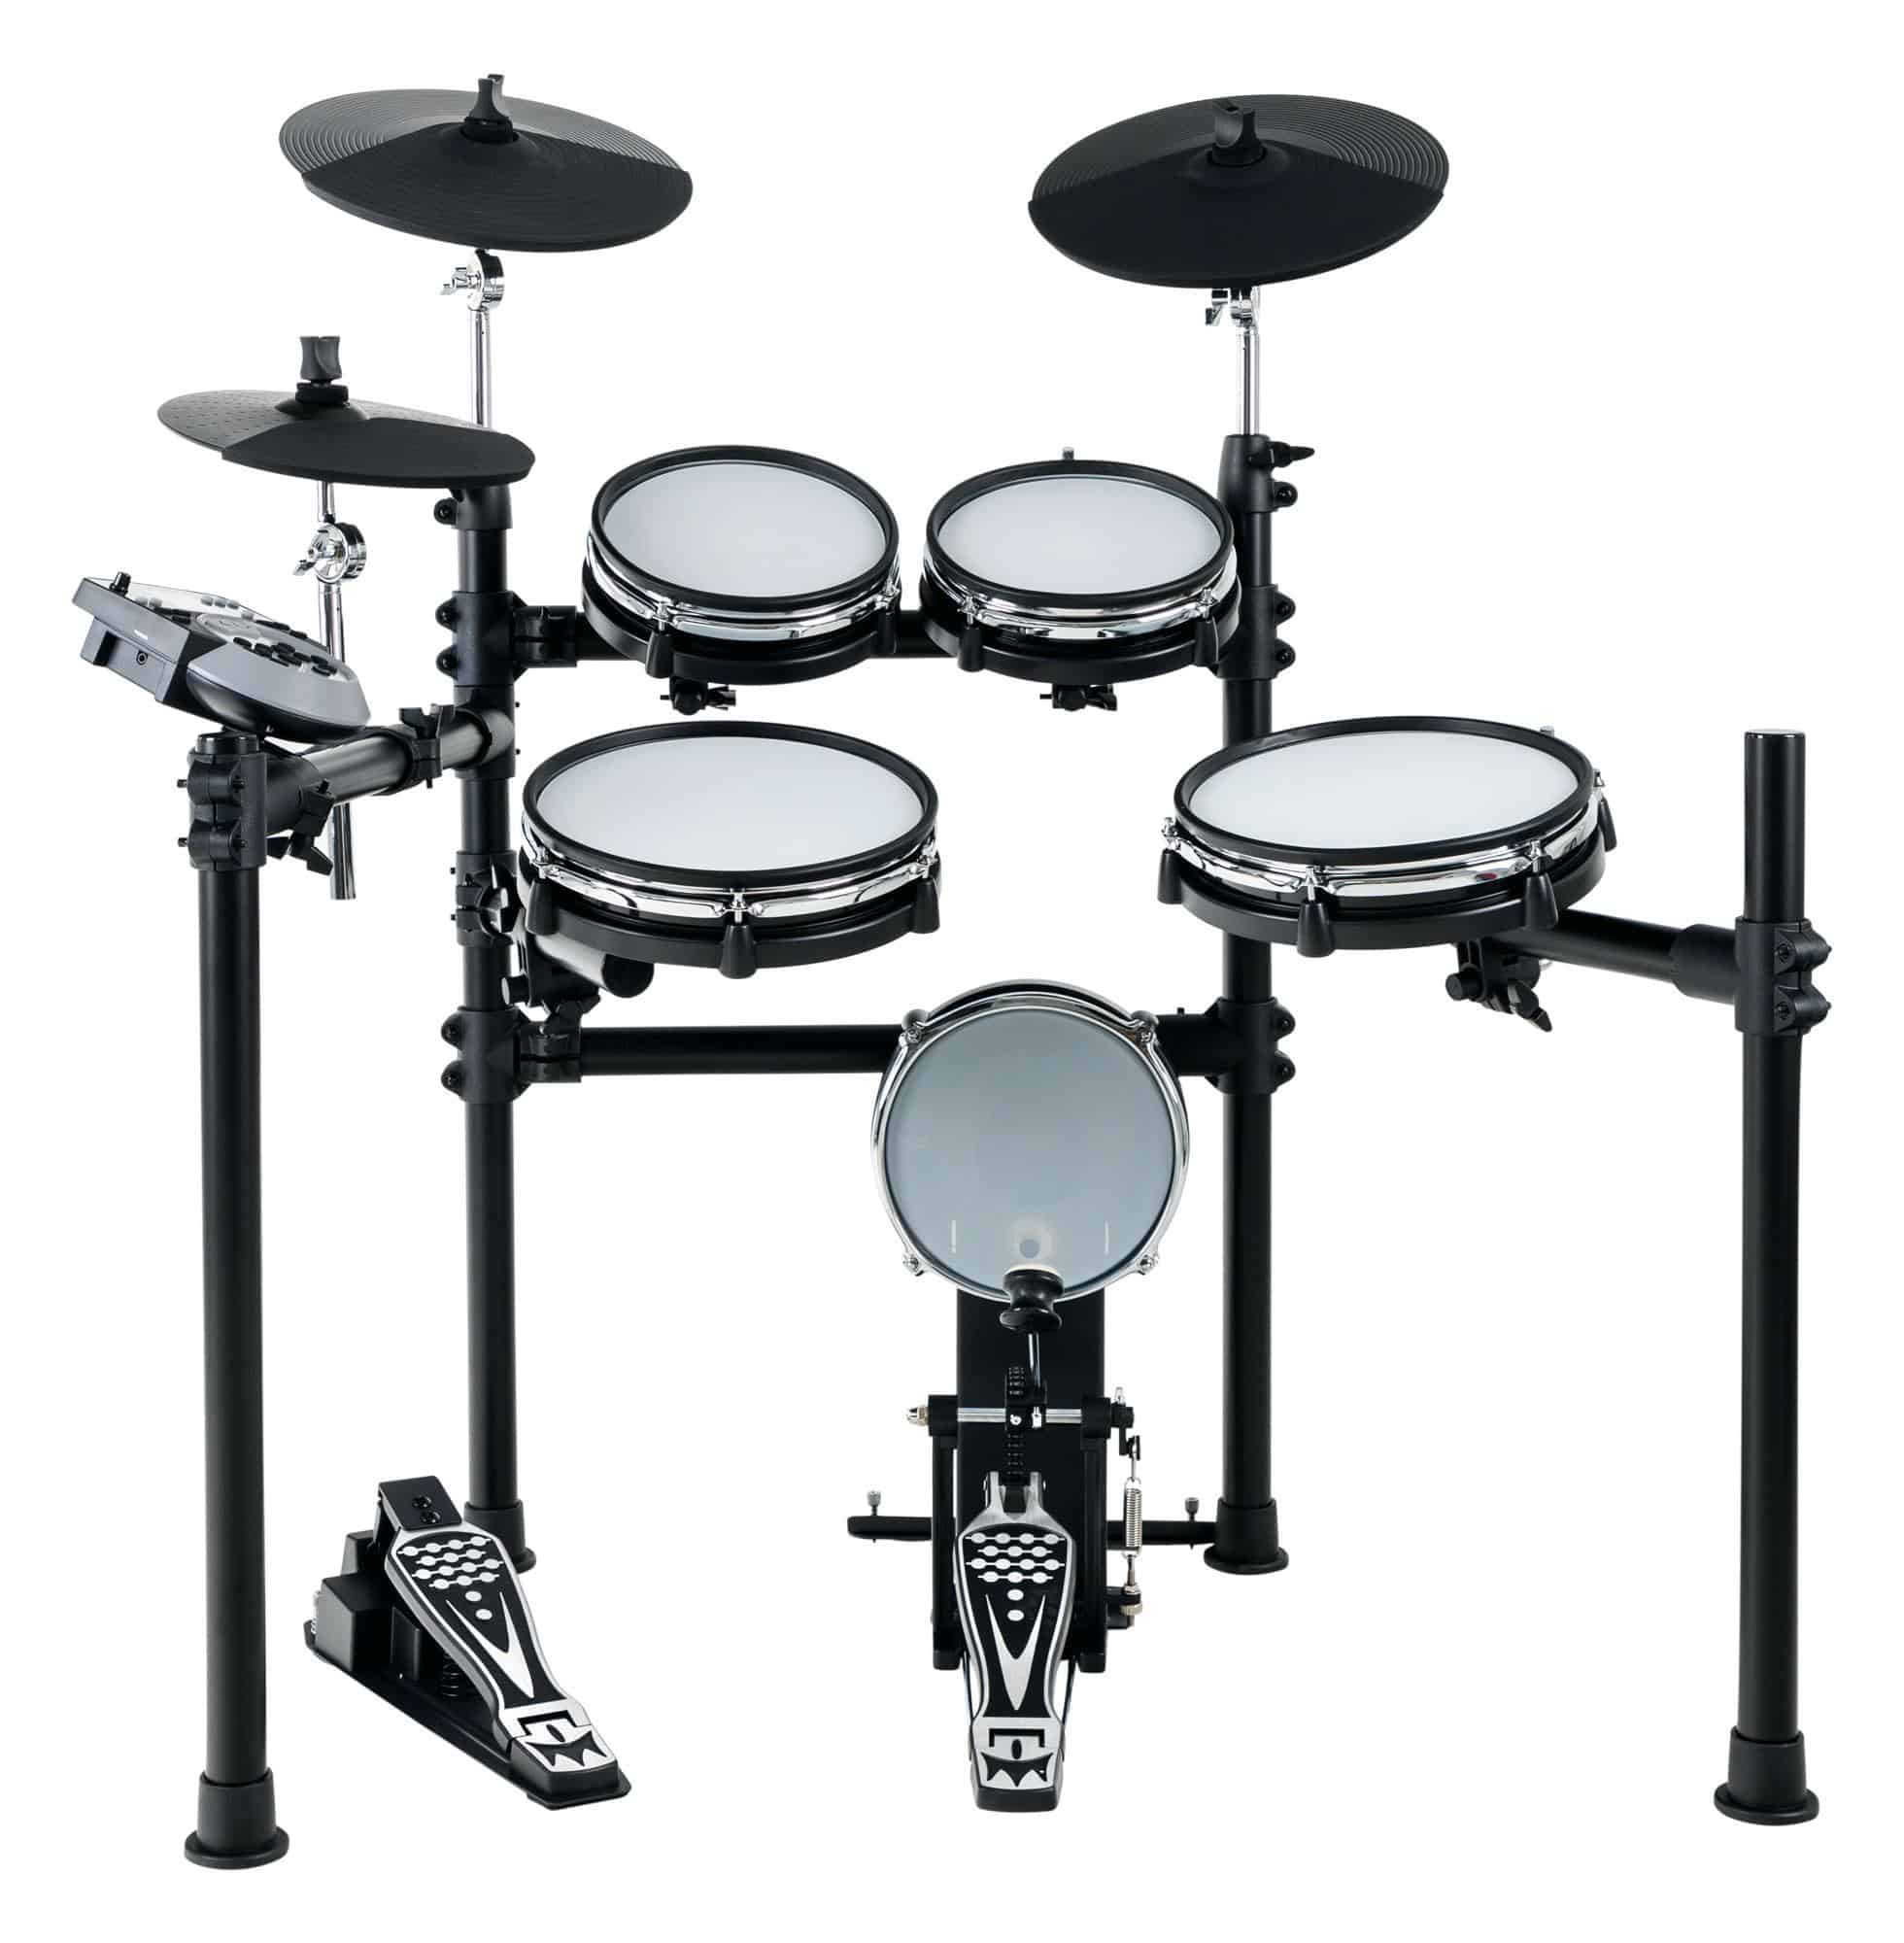 XDrum DD-530 Electronic drumset with mesh heads